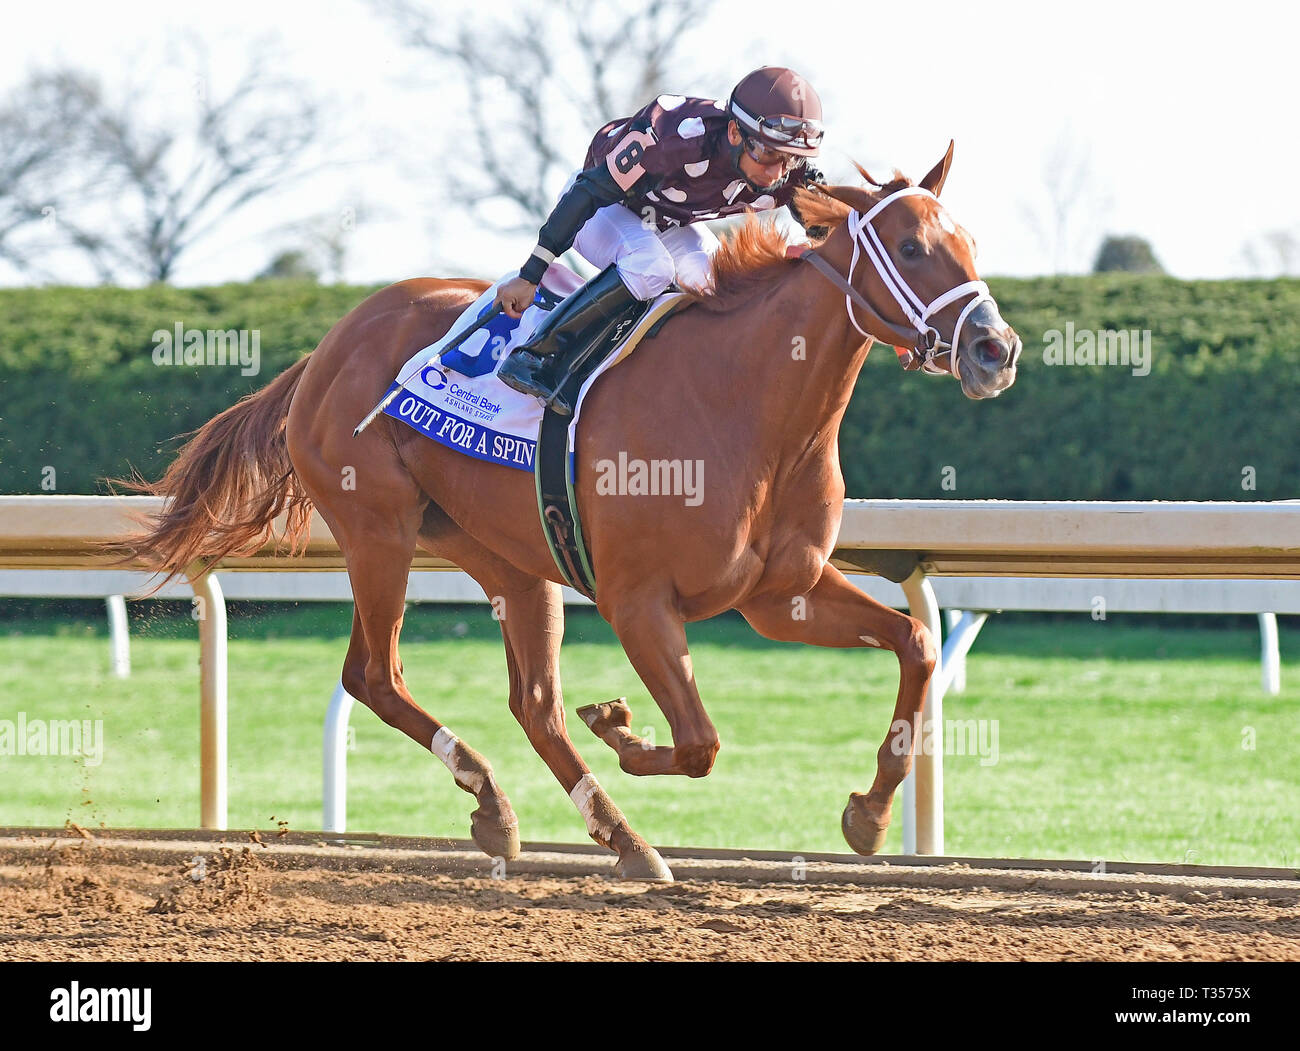 Lexington, Ky, KY, USA. 6th Apr, 2019. April 6, 2019 : Out for a Spin, trained by George Weaver, wins the 52nd Running of The Central Bank Ashland (G1) at Keeneland on April 6, 2019 in Lexington, KY. Jessica Morgan/ESW/CSM/Alamy Live News - Stock Image